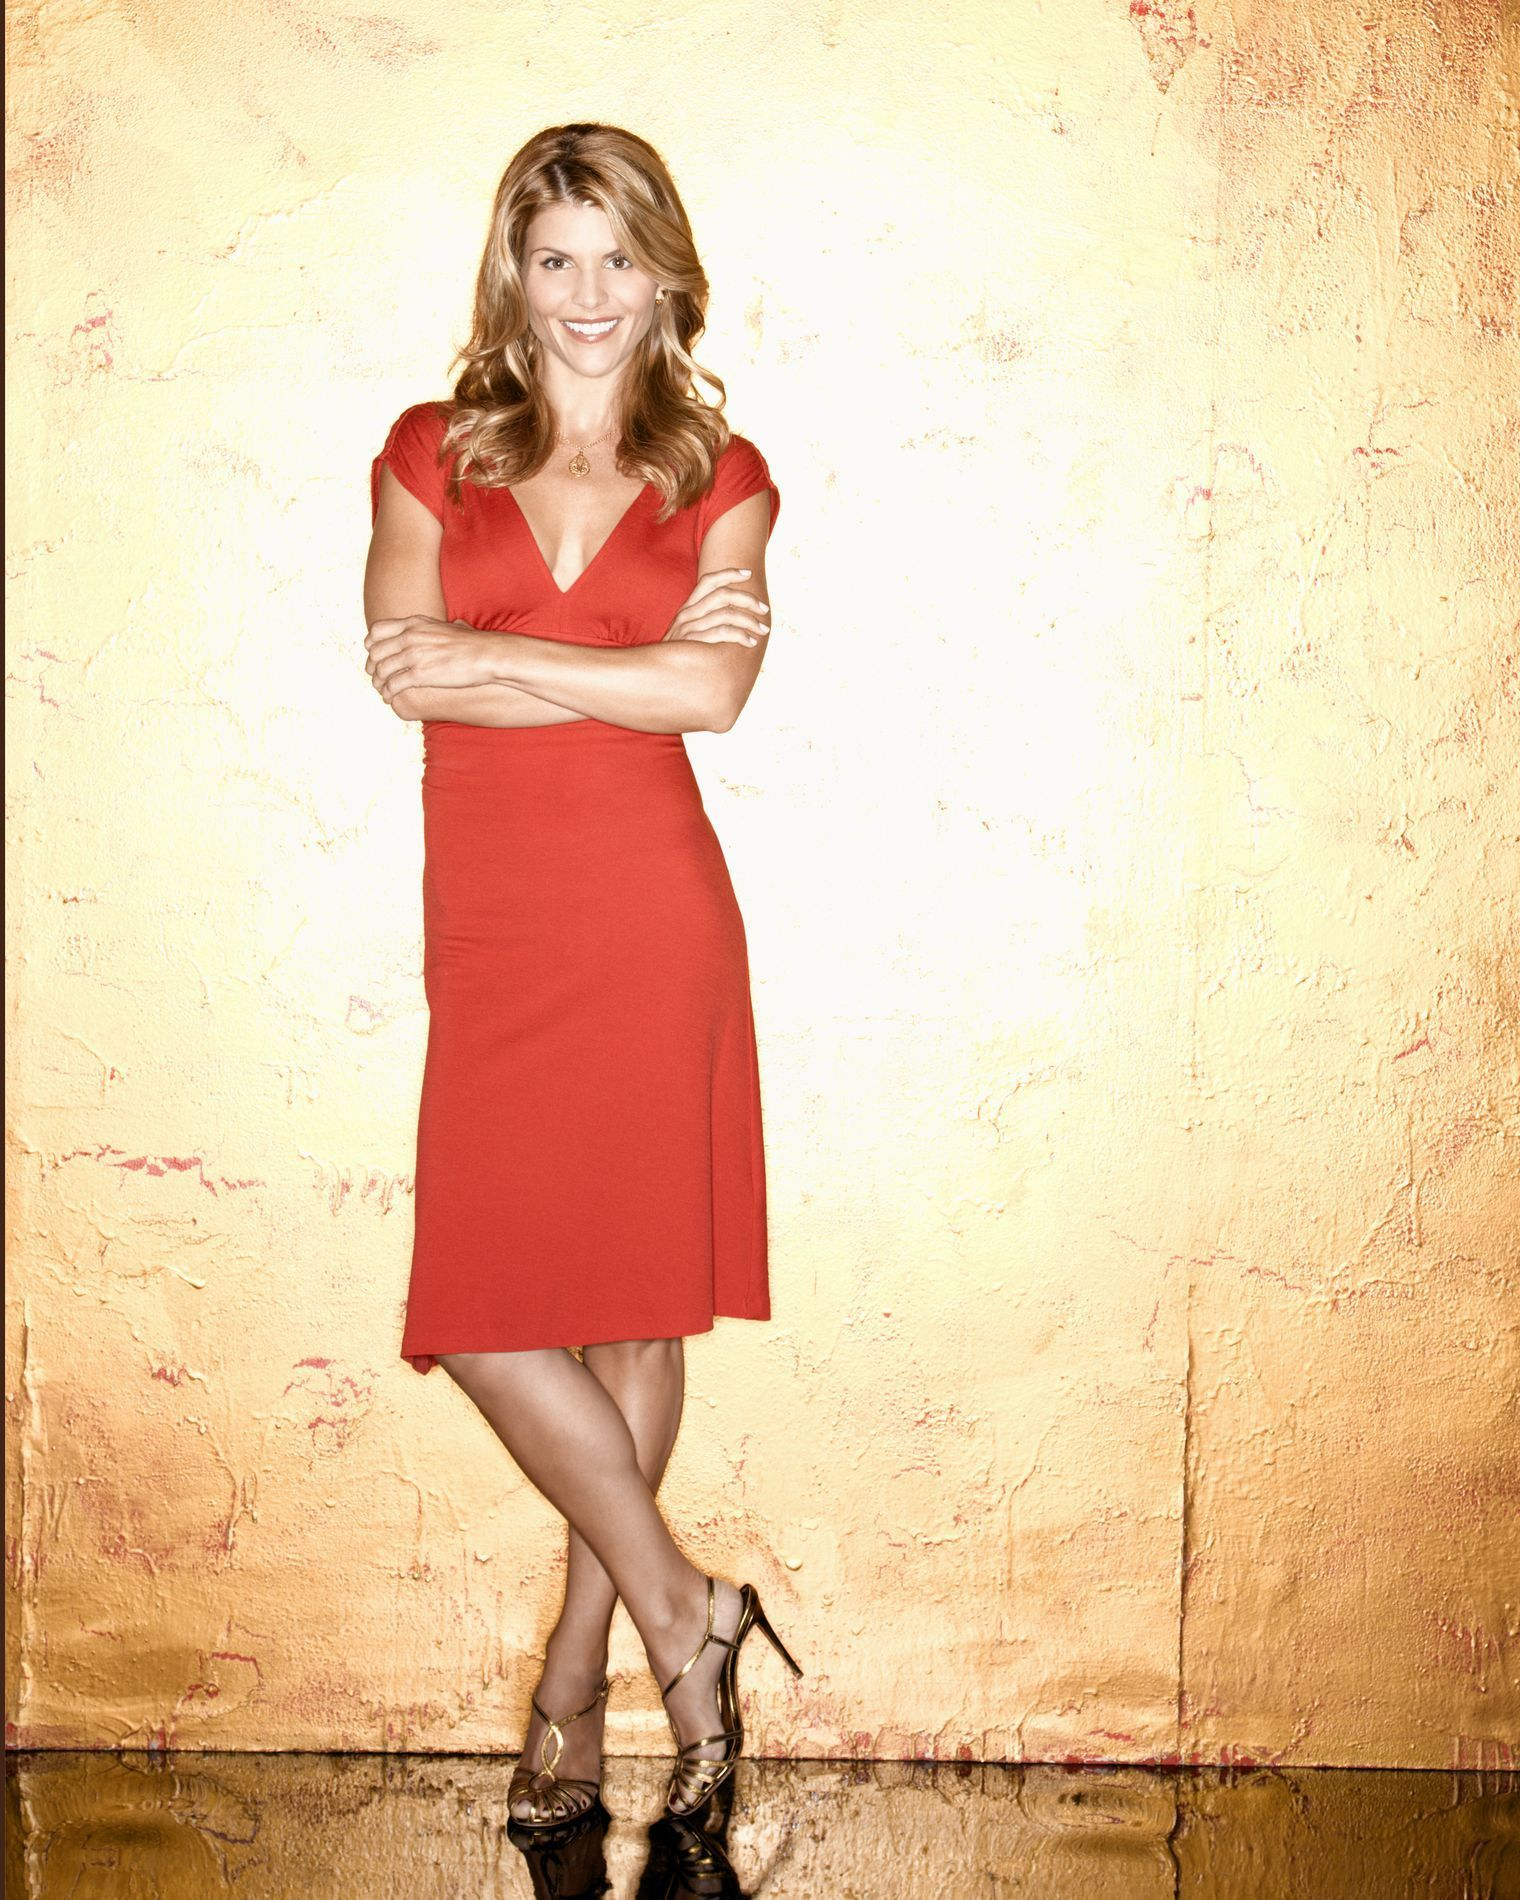 Lori Loughlin Lori Loughlin Photo 17323883 Fanpop